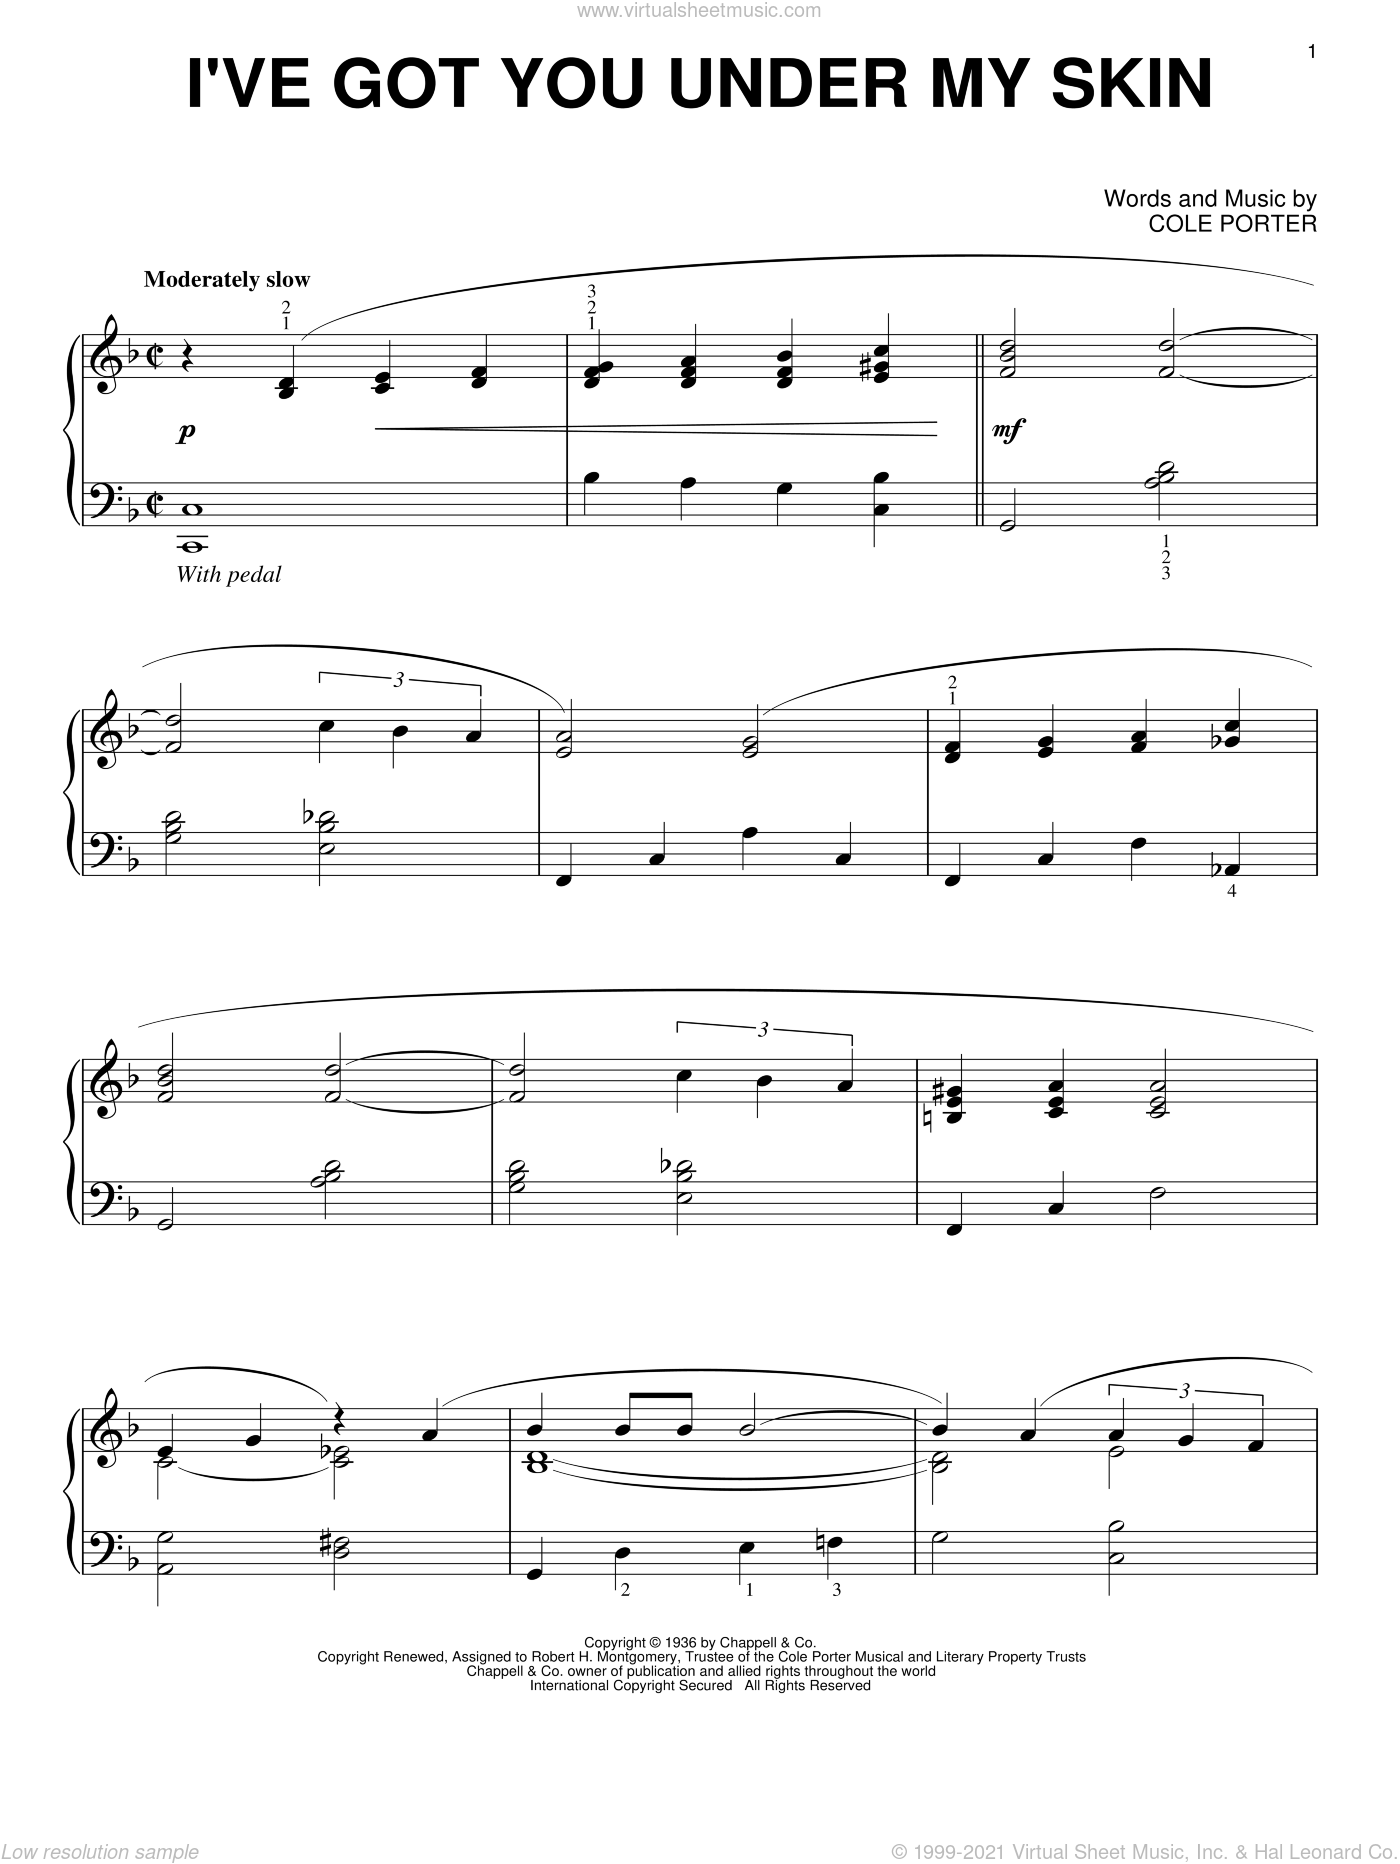 I've Got You Under My Skin sheet music for piano solo by Cole Porter, intermediate skill level